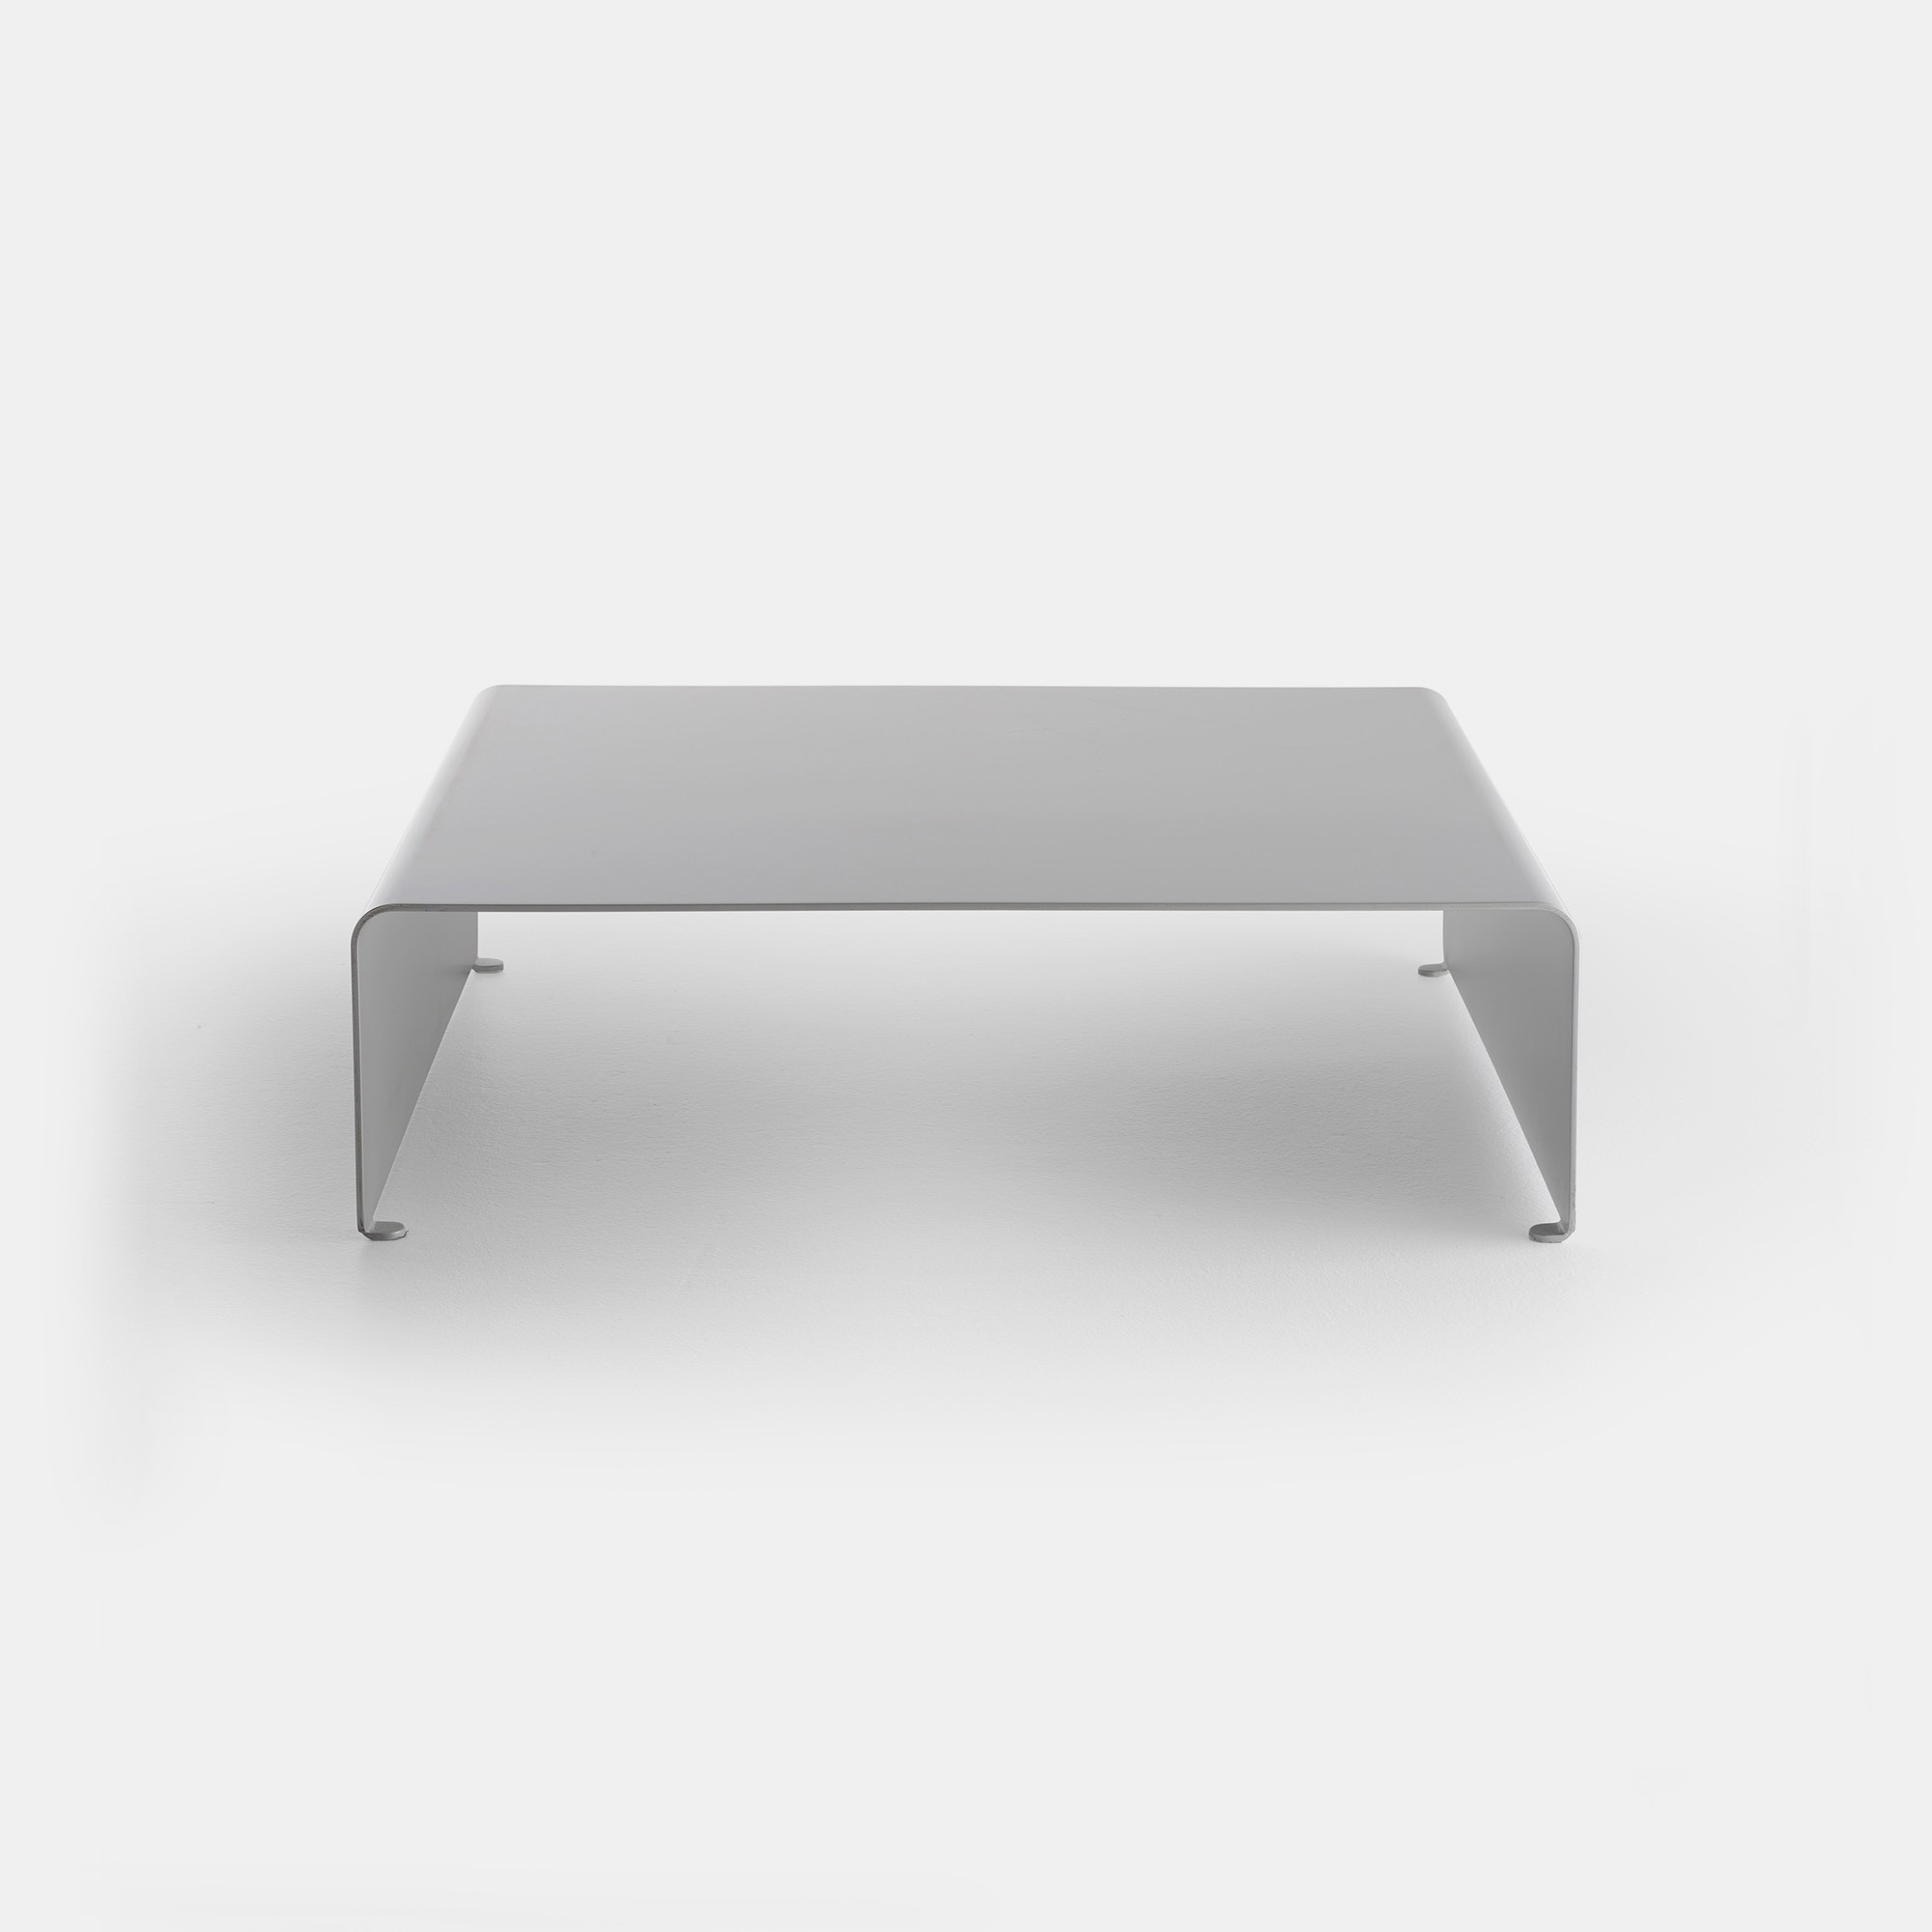 LA TABLE BASSE Rectangular shaped coffee tables with a modern